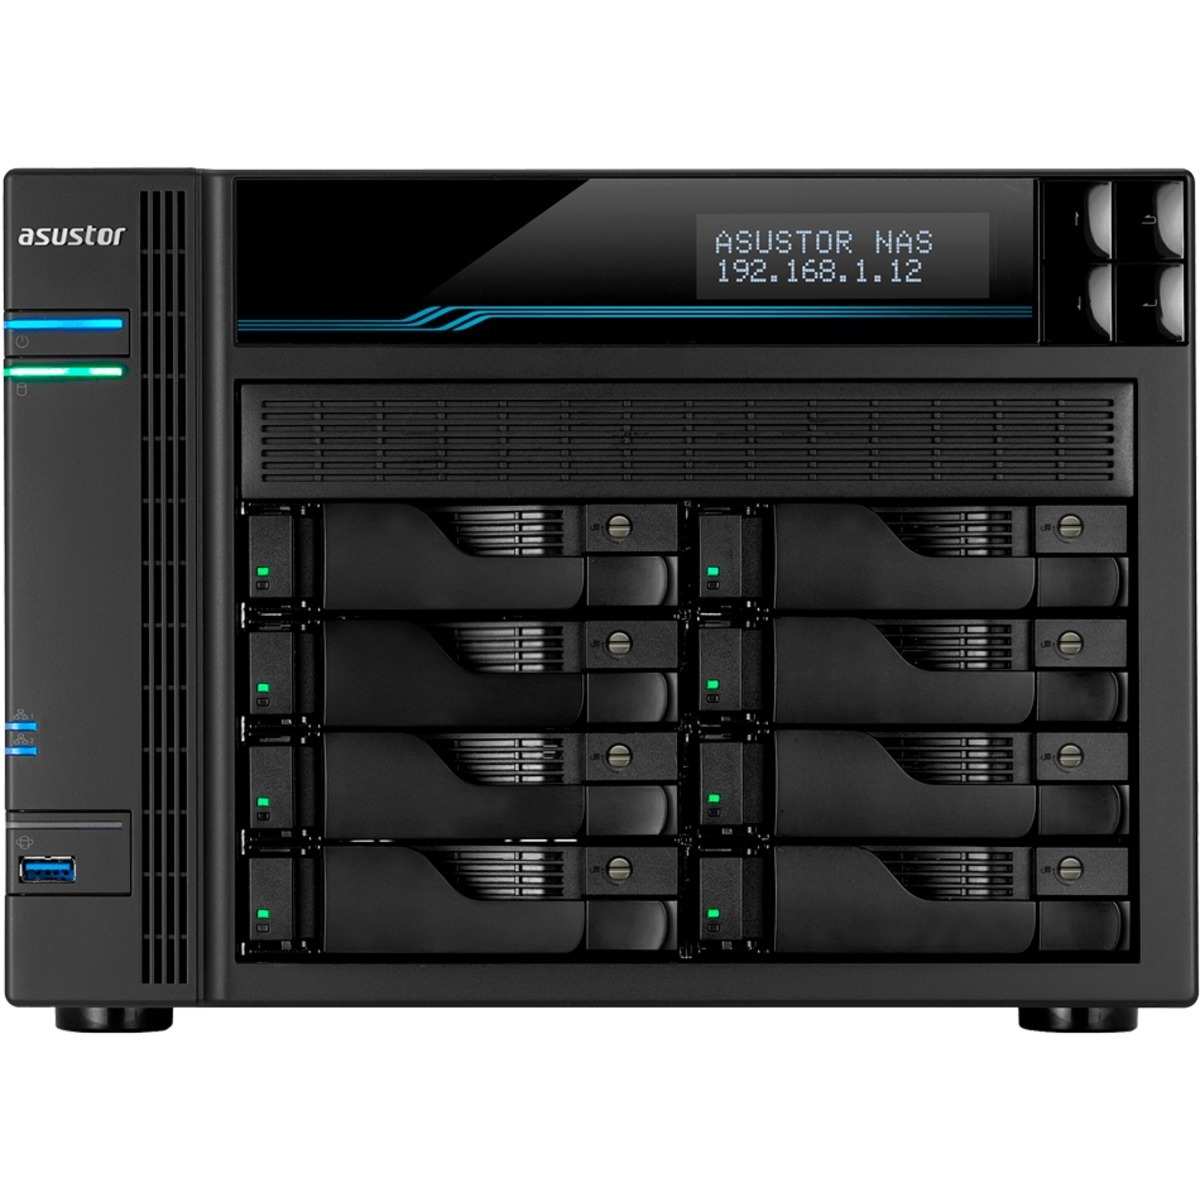 buy $3007 ASUSTOR AS6508T Lockerstor 8 7.6tb Desktop NAS - Network Attached Storage Device 8x960gb Seagate IronWolf ZA960NM10011 2.5 SATA 6Gb/s SSD NAS Class Drives Installed - Burn-In Tested - nas headquarters buy network attached storage server device das new raid-5 free shipping usa spring inventory clearance sale happening now AS6508T Lockerstor 8